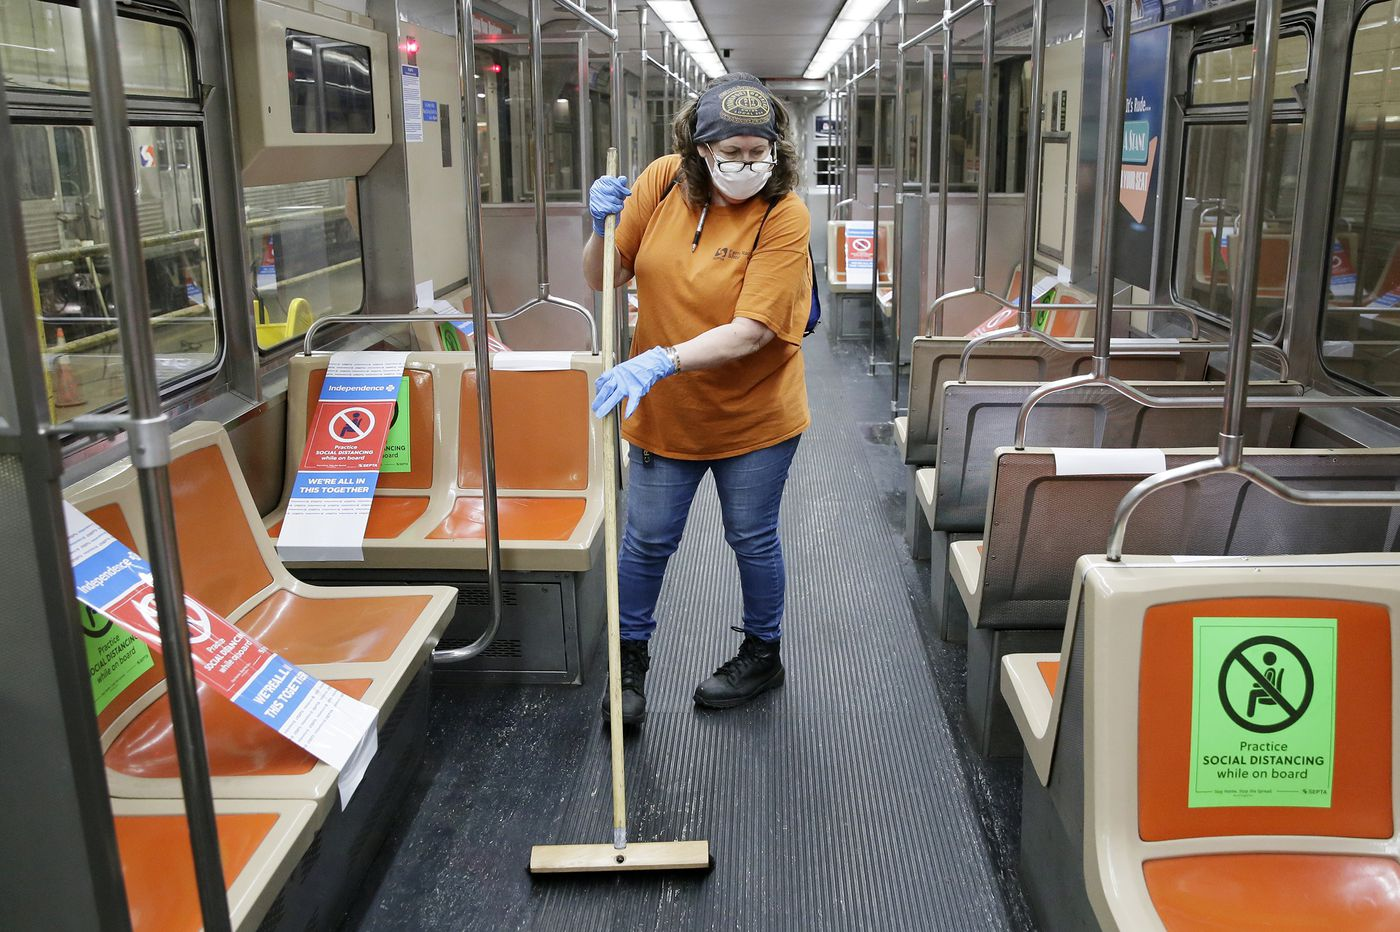 Between feces and bodily fluids, the coronavirus makes SEPTA's dirtiest jobs even tougher